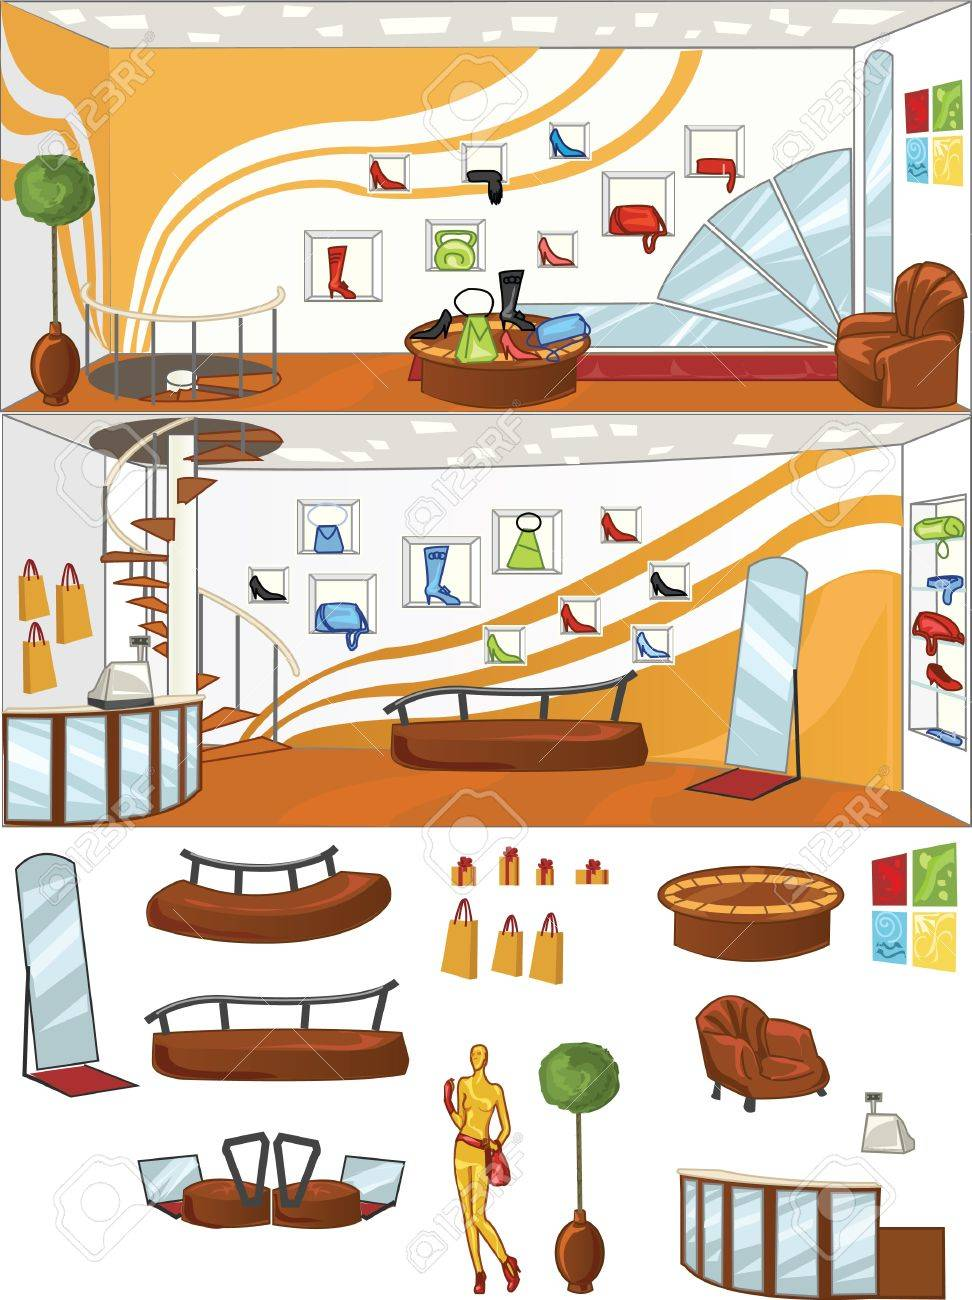 concept design of shoes shop interior, with isolated objects Stock Vector - 11671558